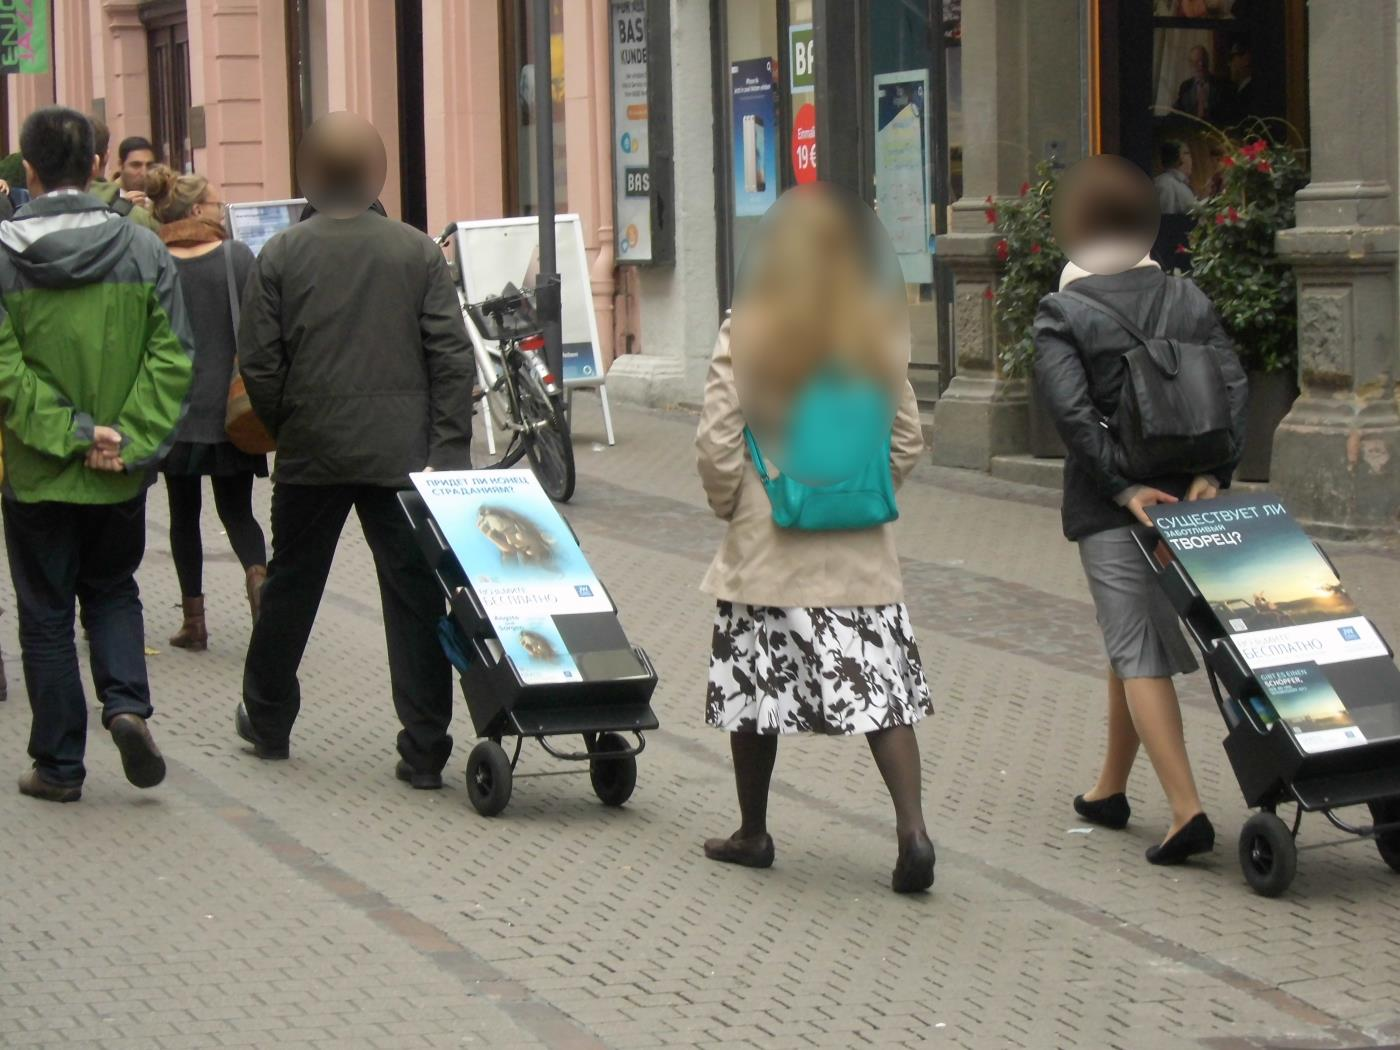 Heidelberg: Jehovah's Witnesses Bleeding Procession